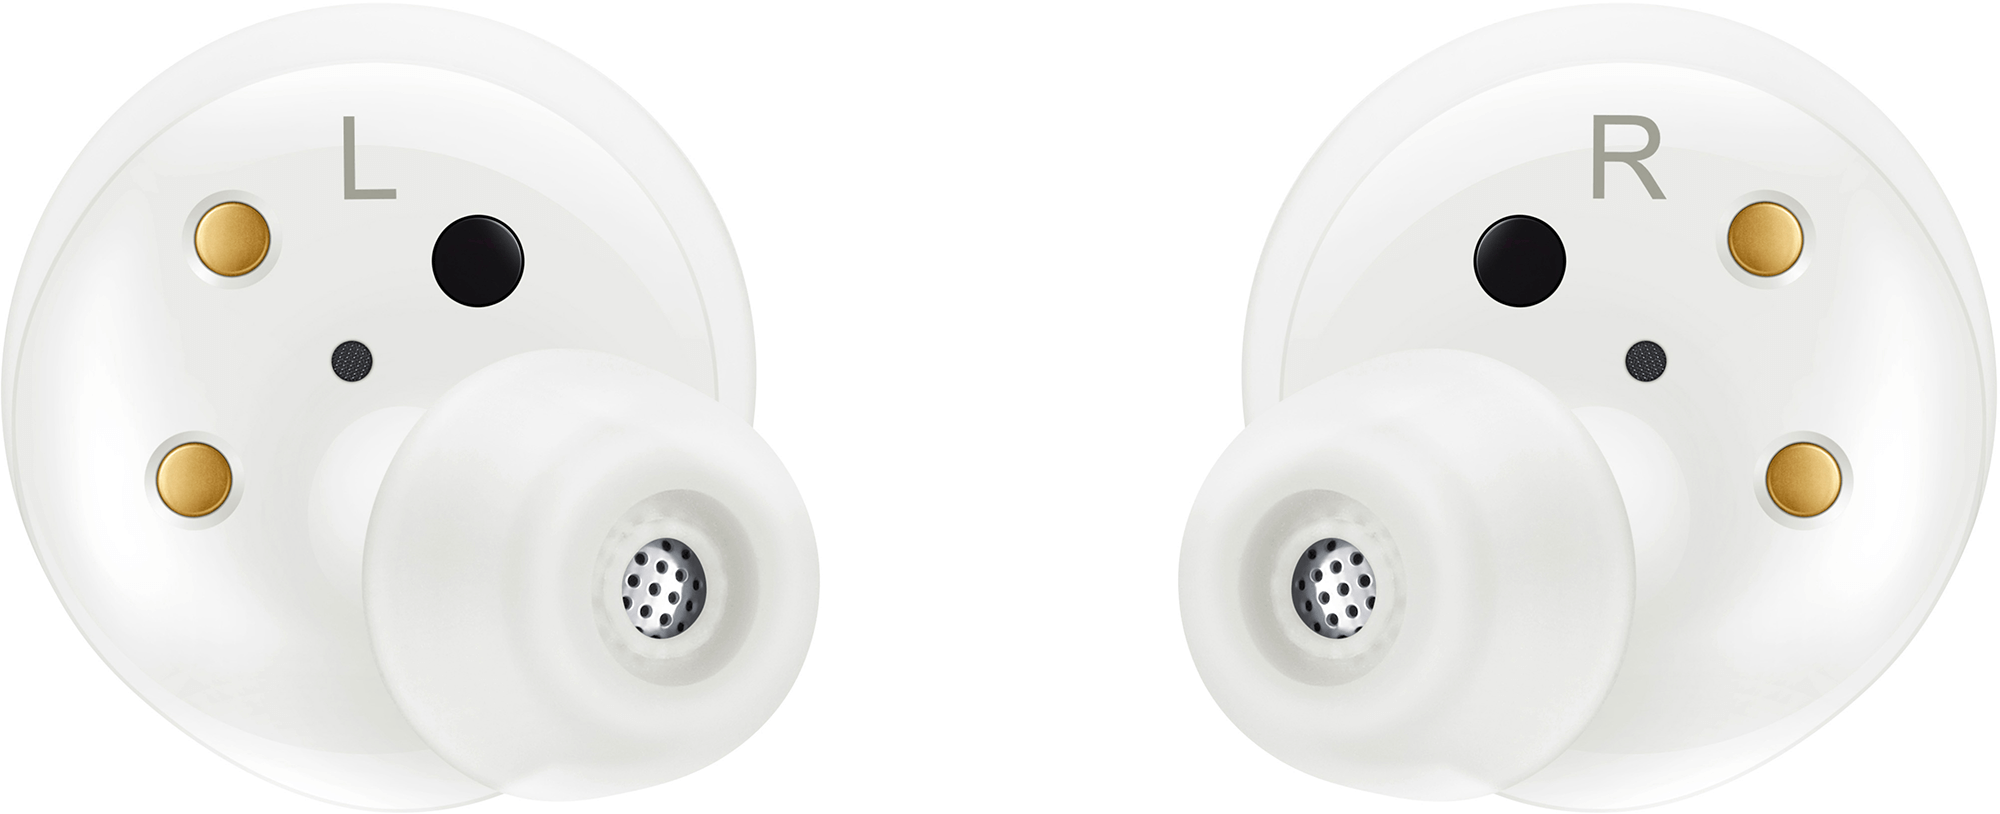 Galaxy Buds+ - Ecouteurs True Wireless - Blanc